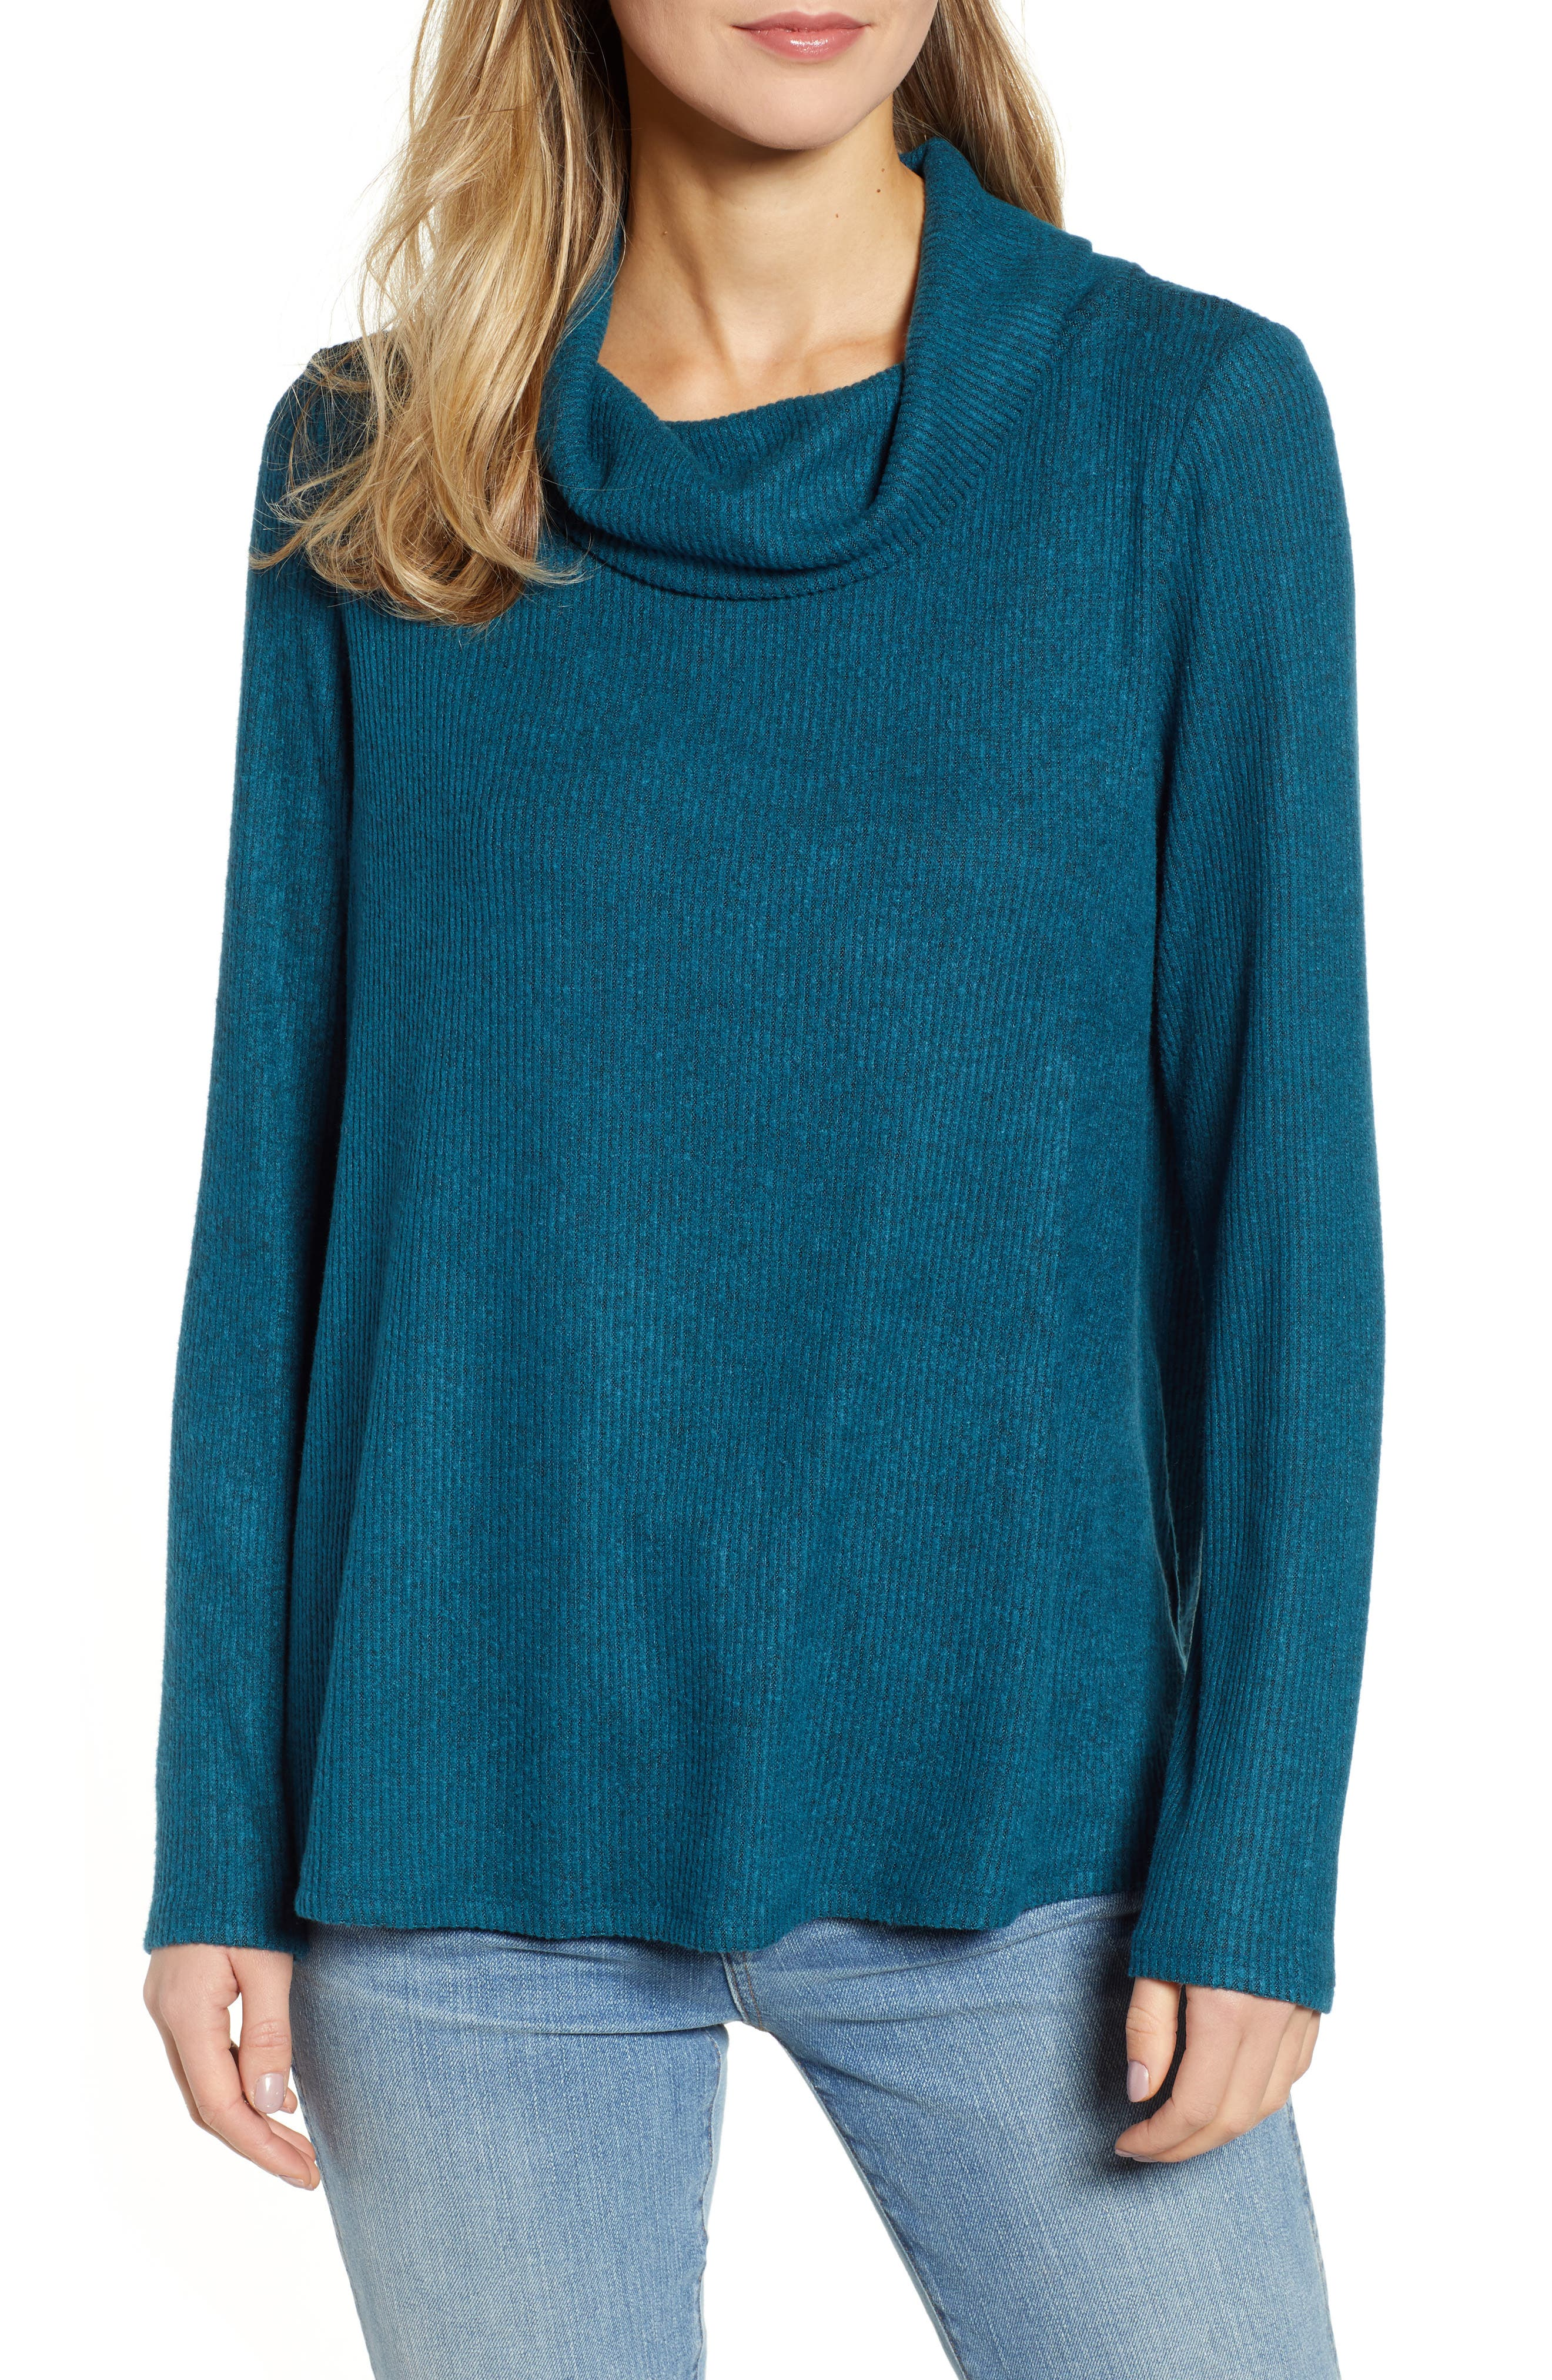 CASLON<SUP>®</SUP>, Off-Duty Cozy Ribbed Tunic, Main thumbnail 1, color, TEAL